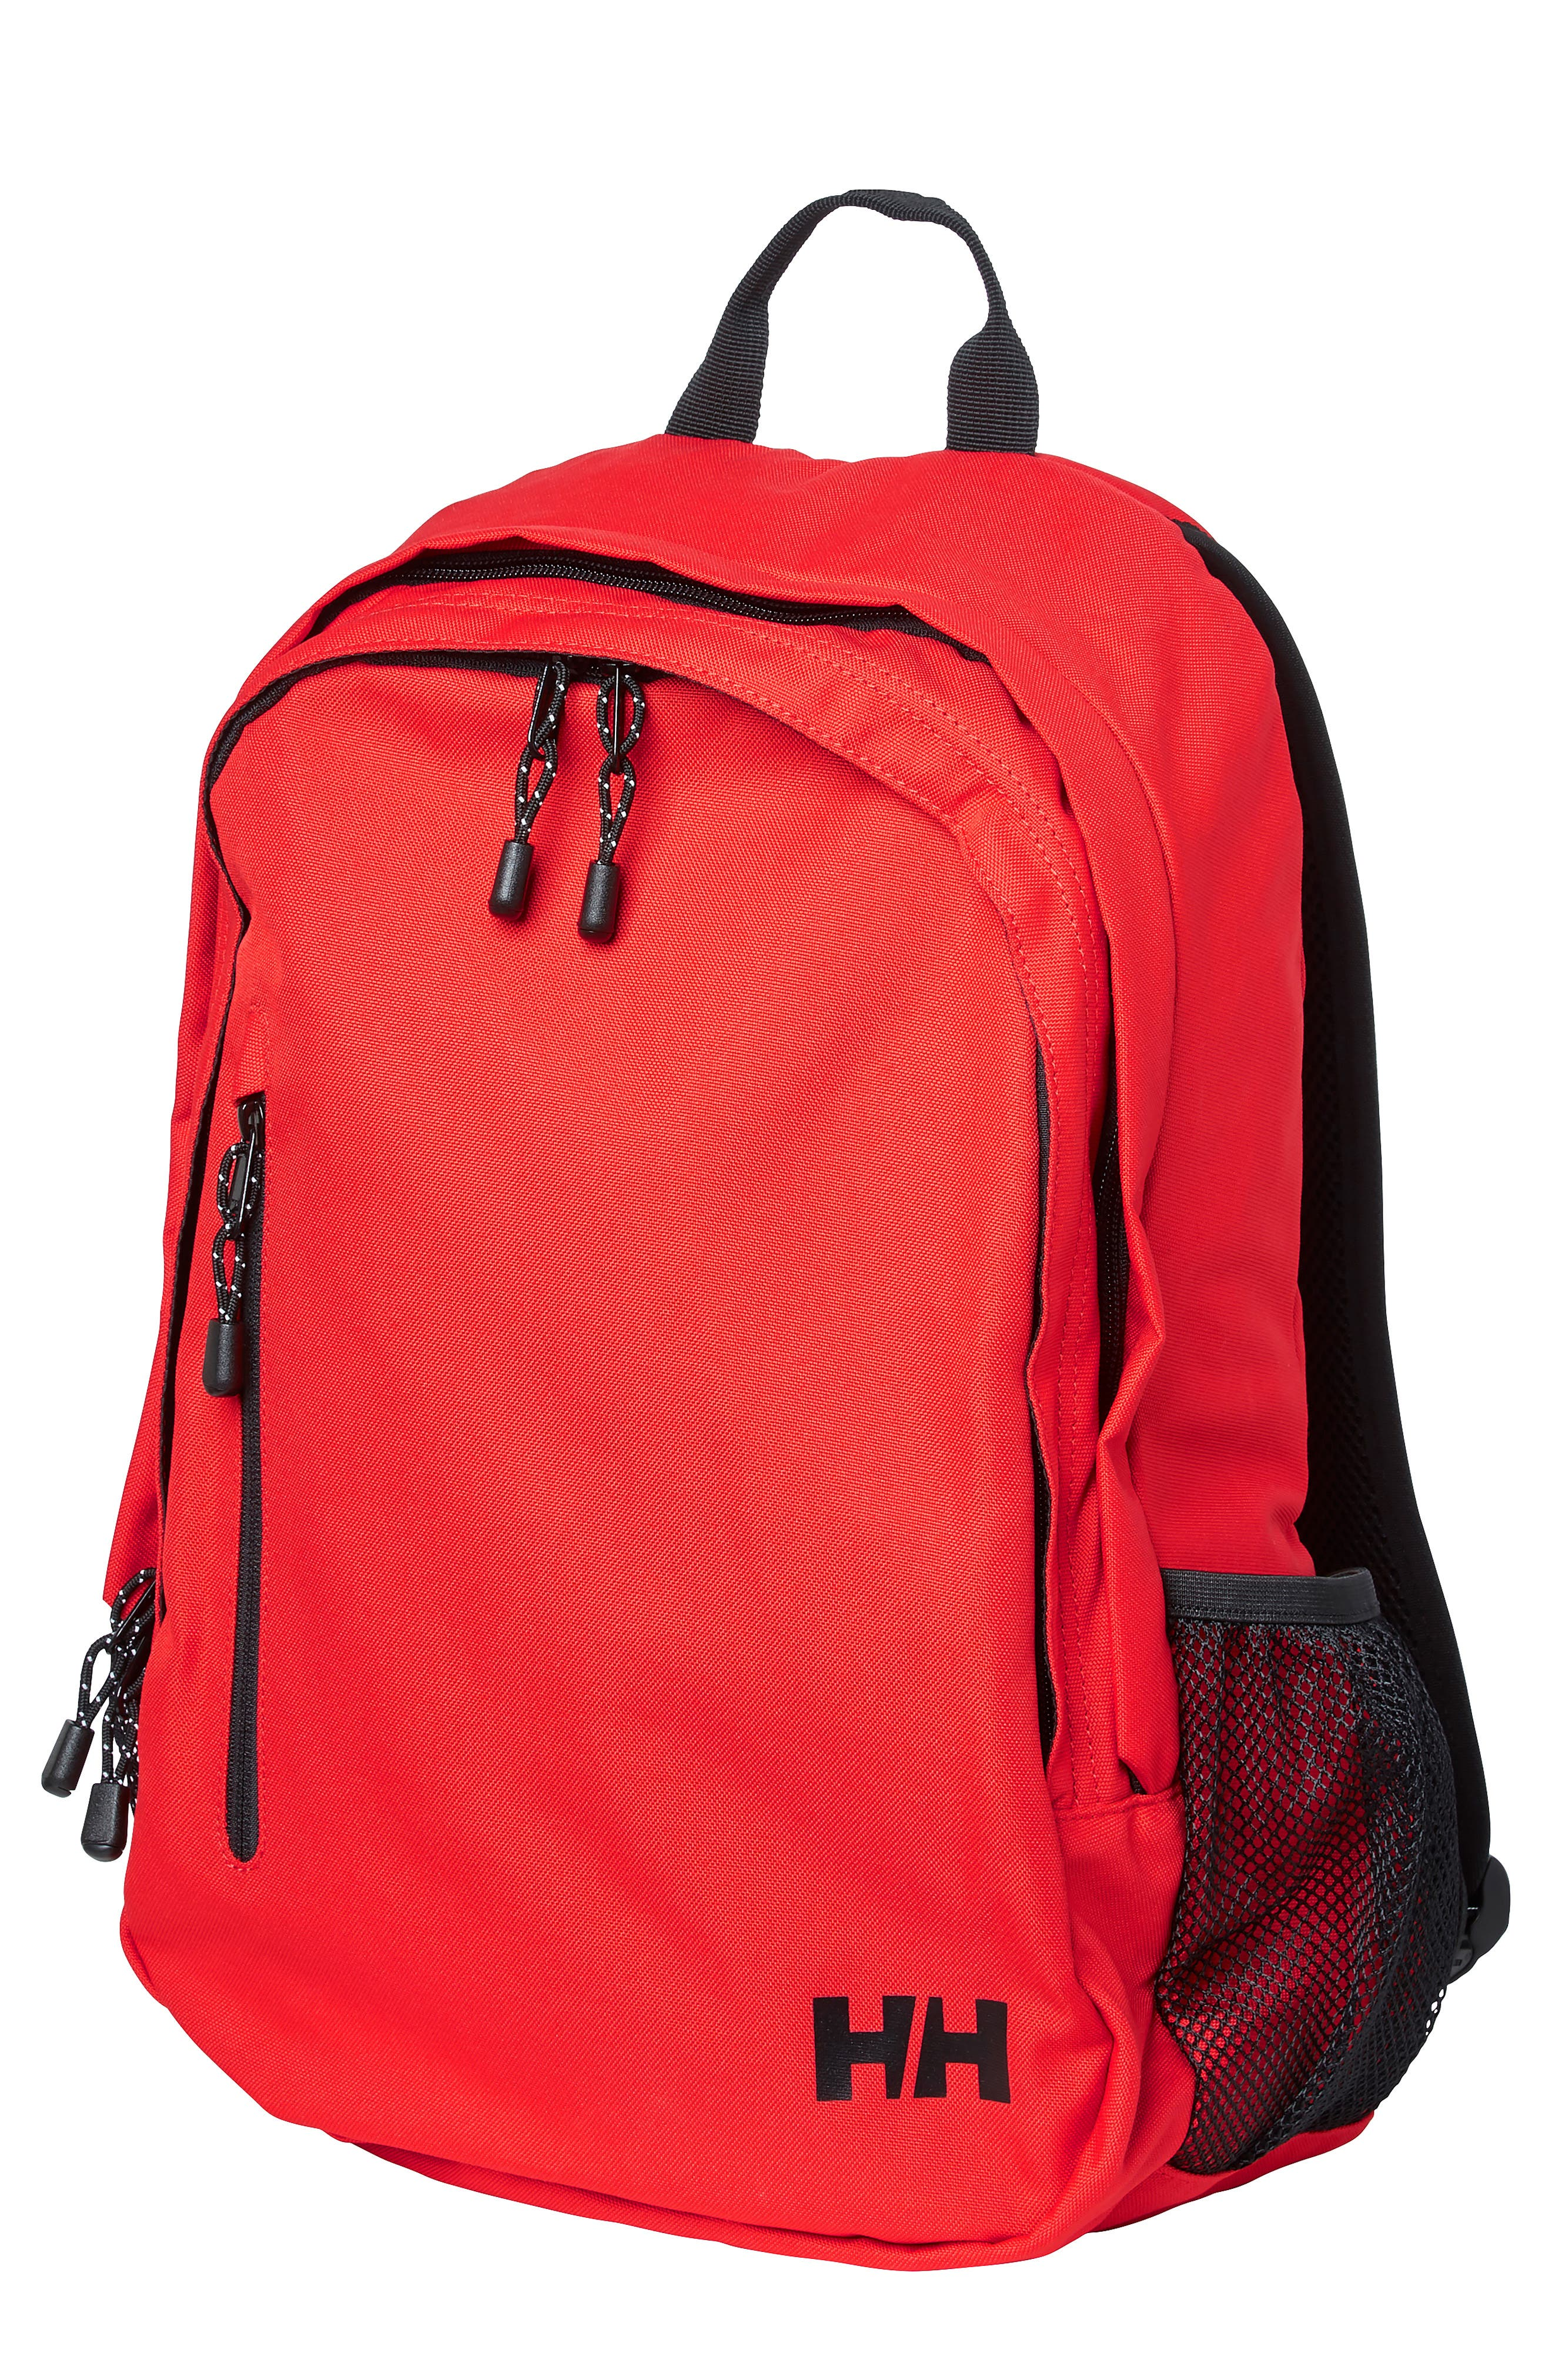 Helly Hansen Dublin Backpack - Red